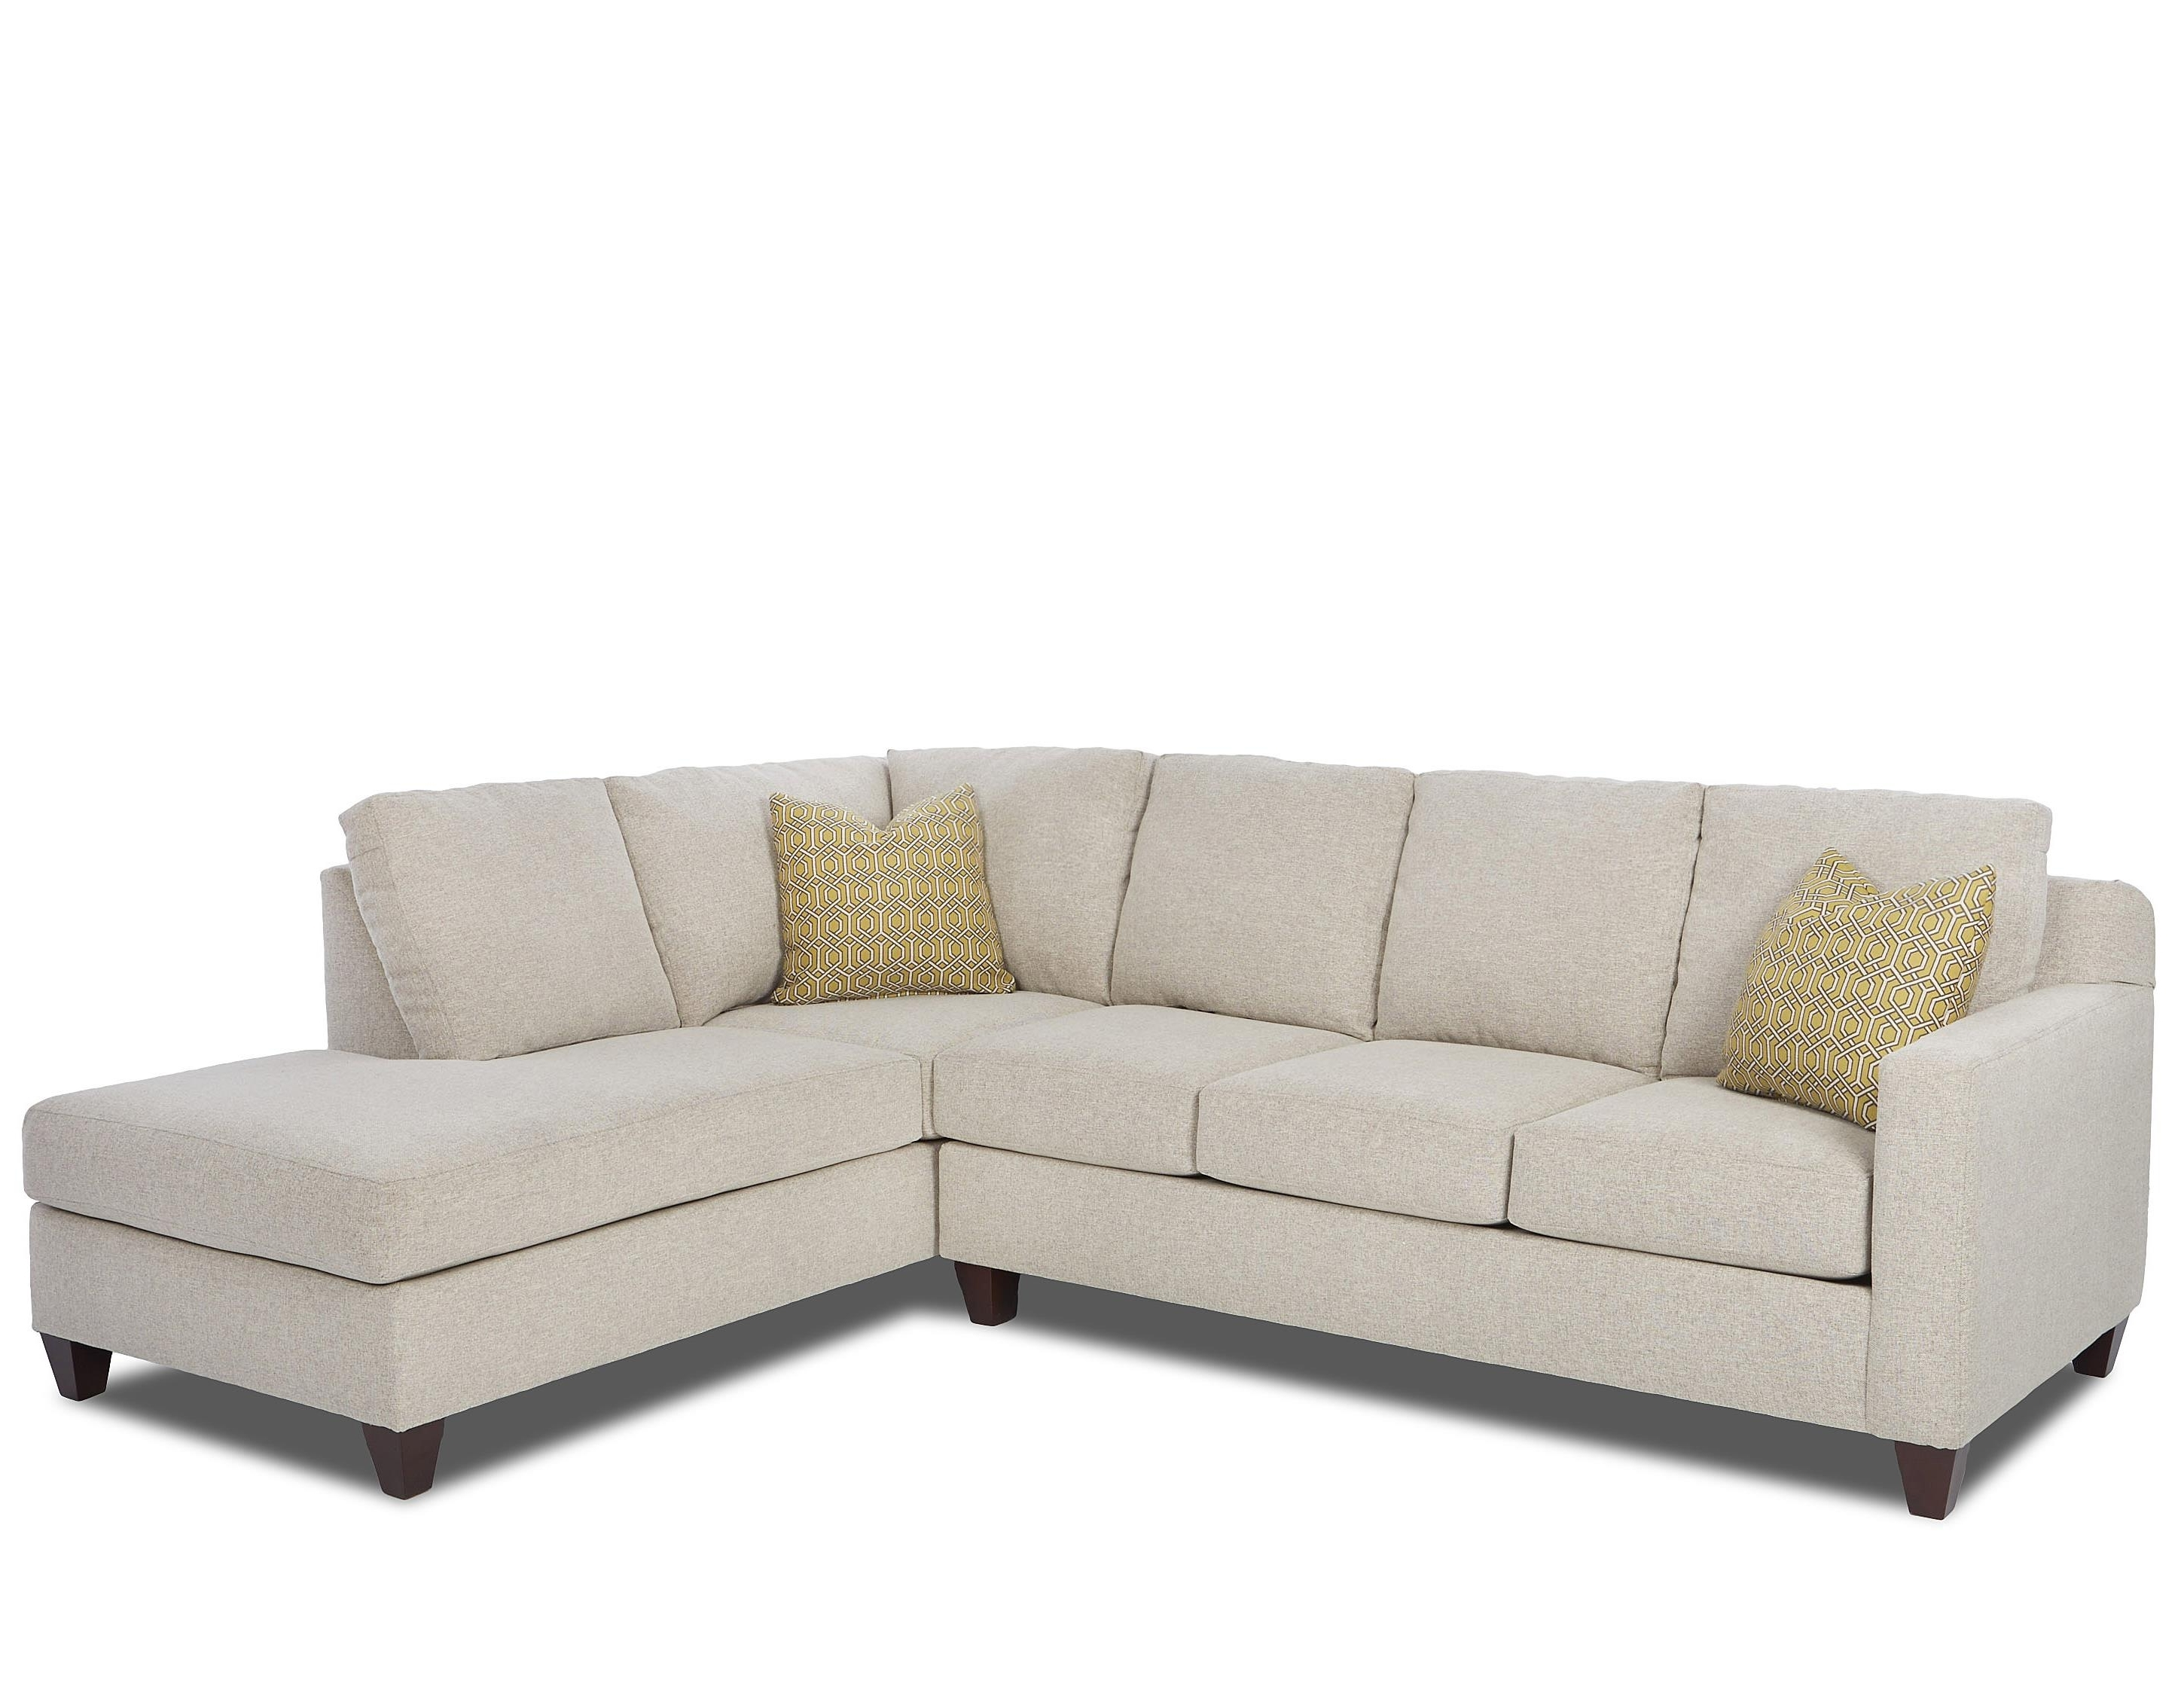 Contemporary 2 Piece Sectional With Right Arm Facing Sofa Chaise For Well Liked Cream Sectionals With Chaise (View 7 of 15)